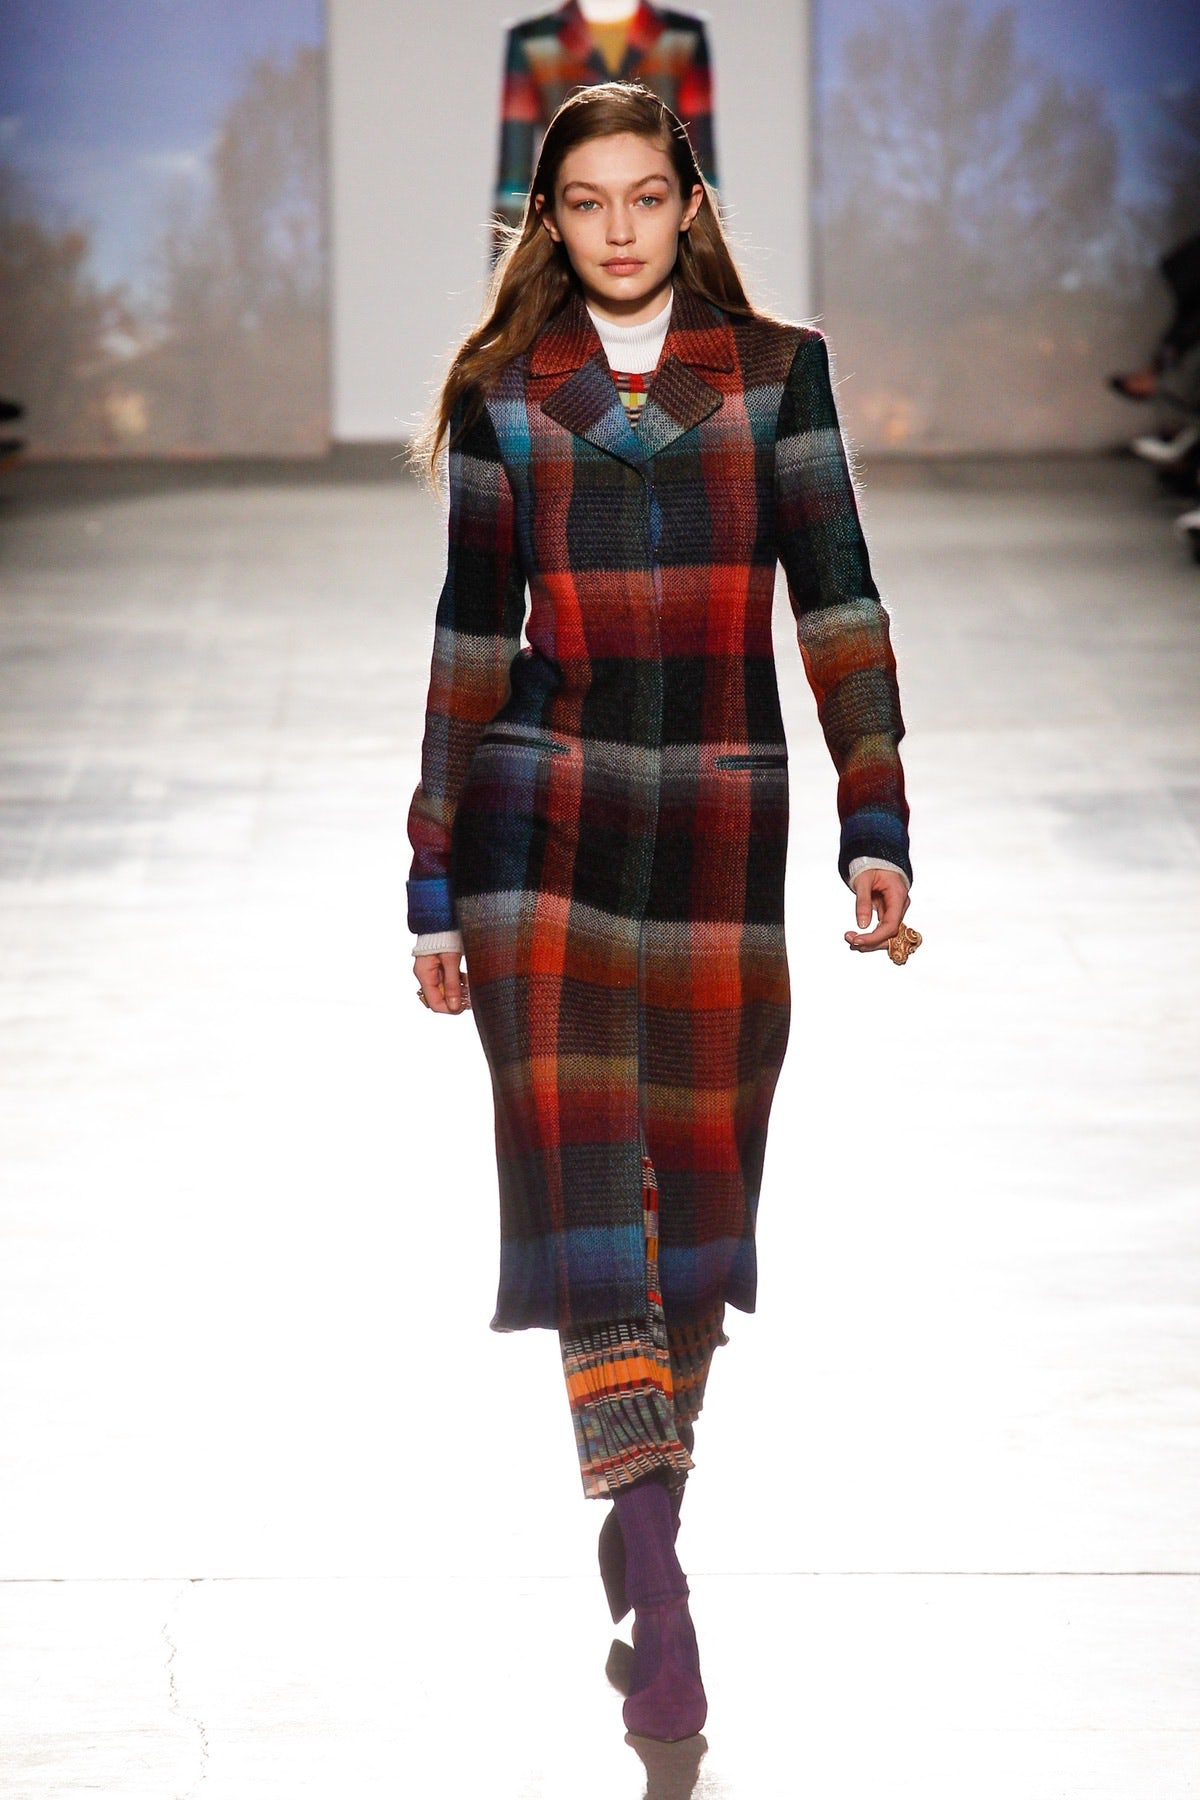 The Missoni March